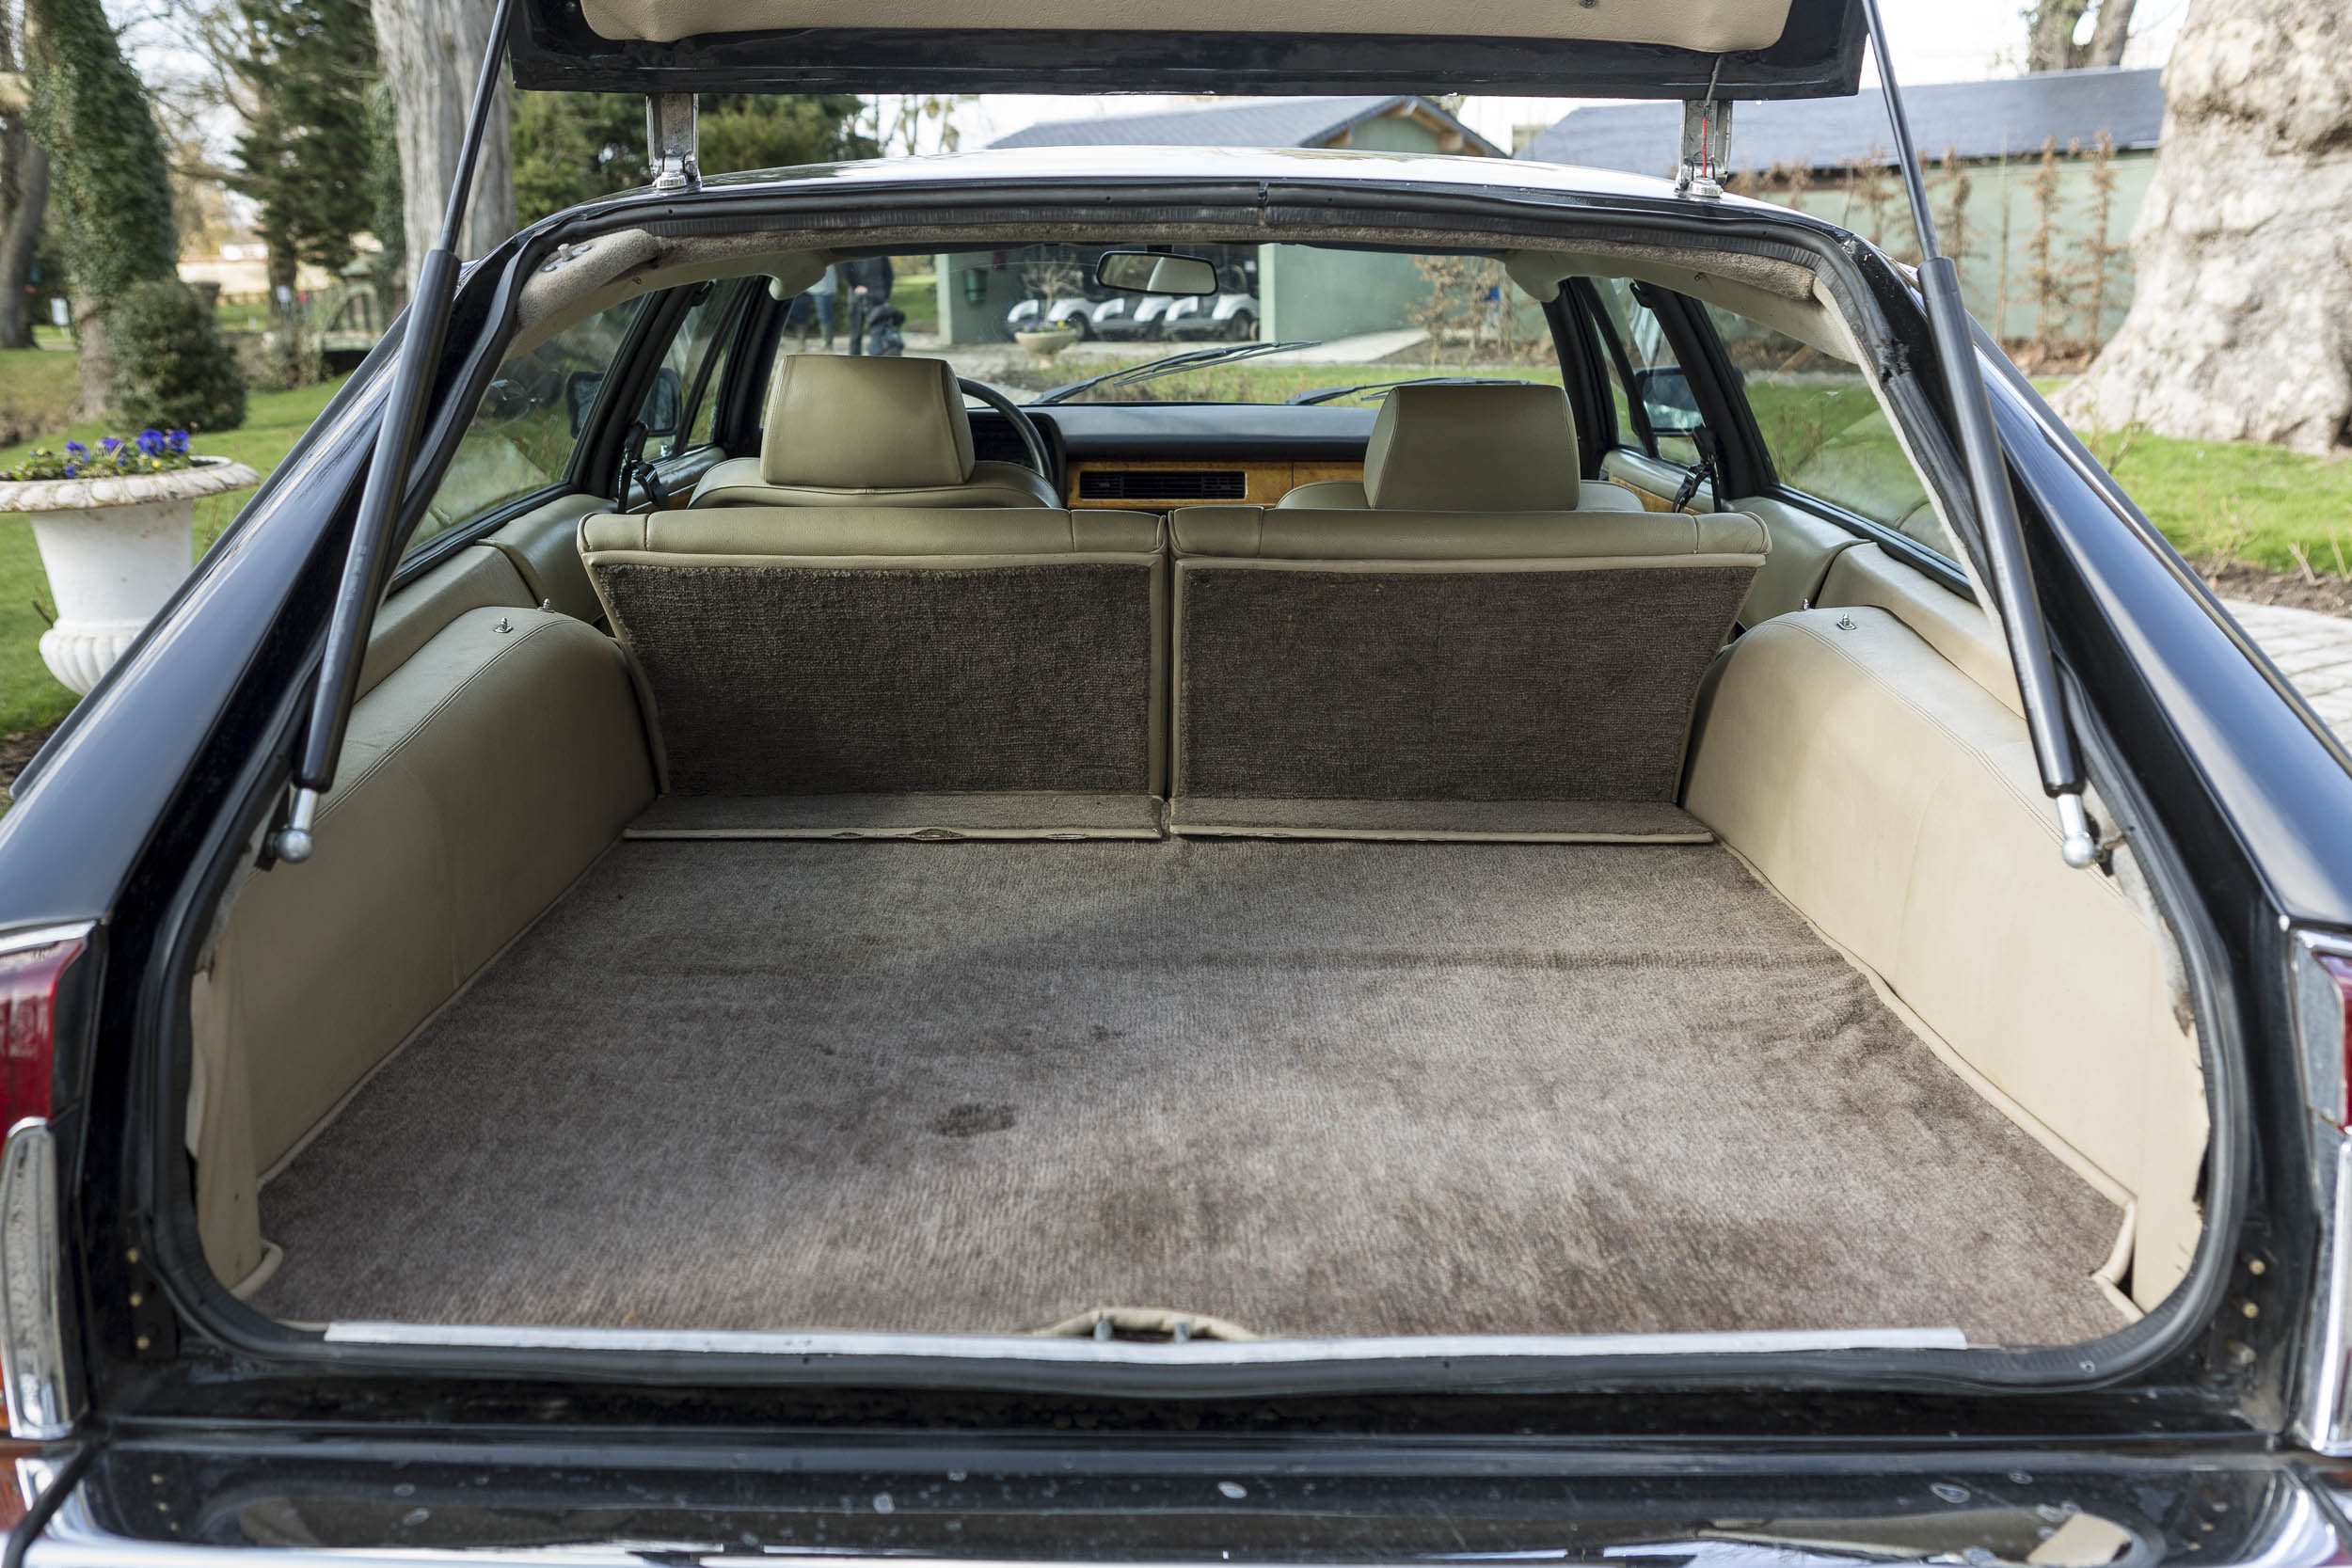 1984 Jaguar XJ-S V-12 trunk